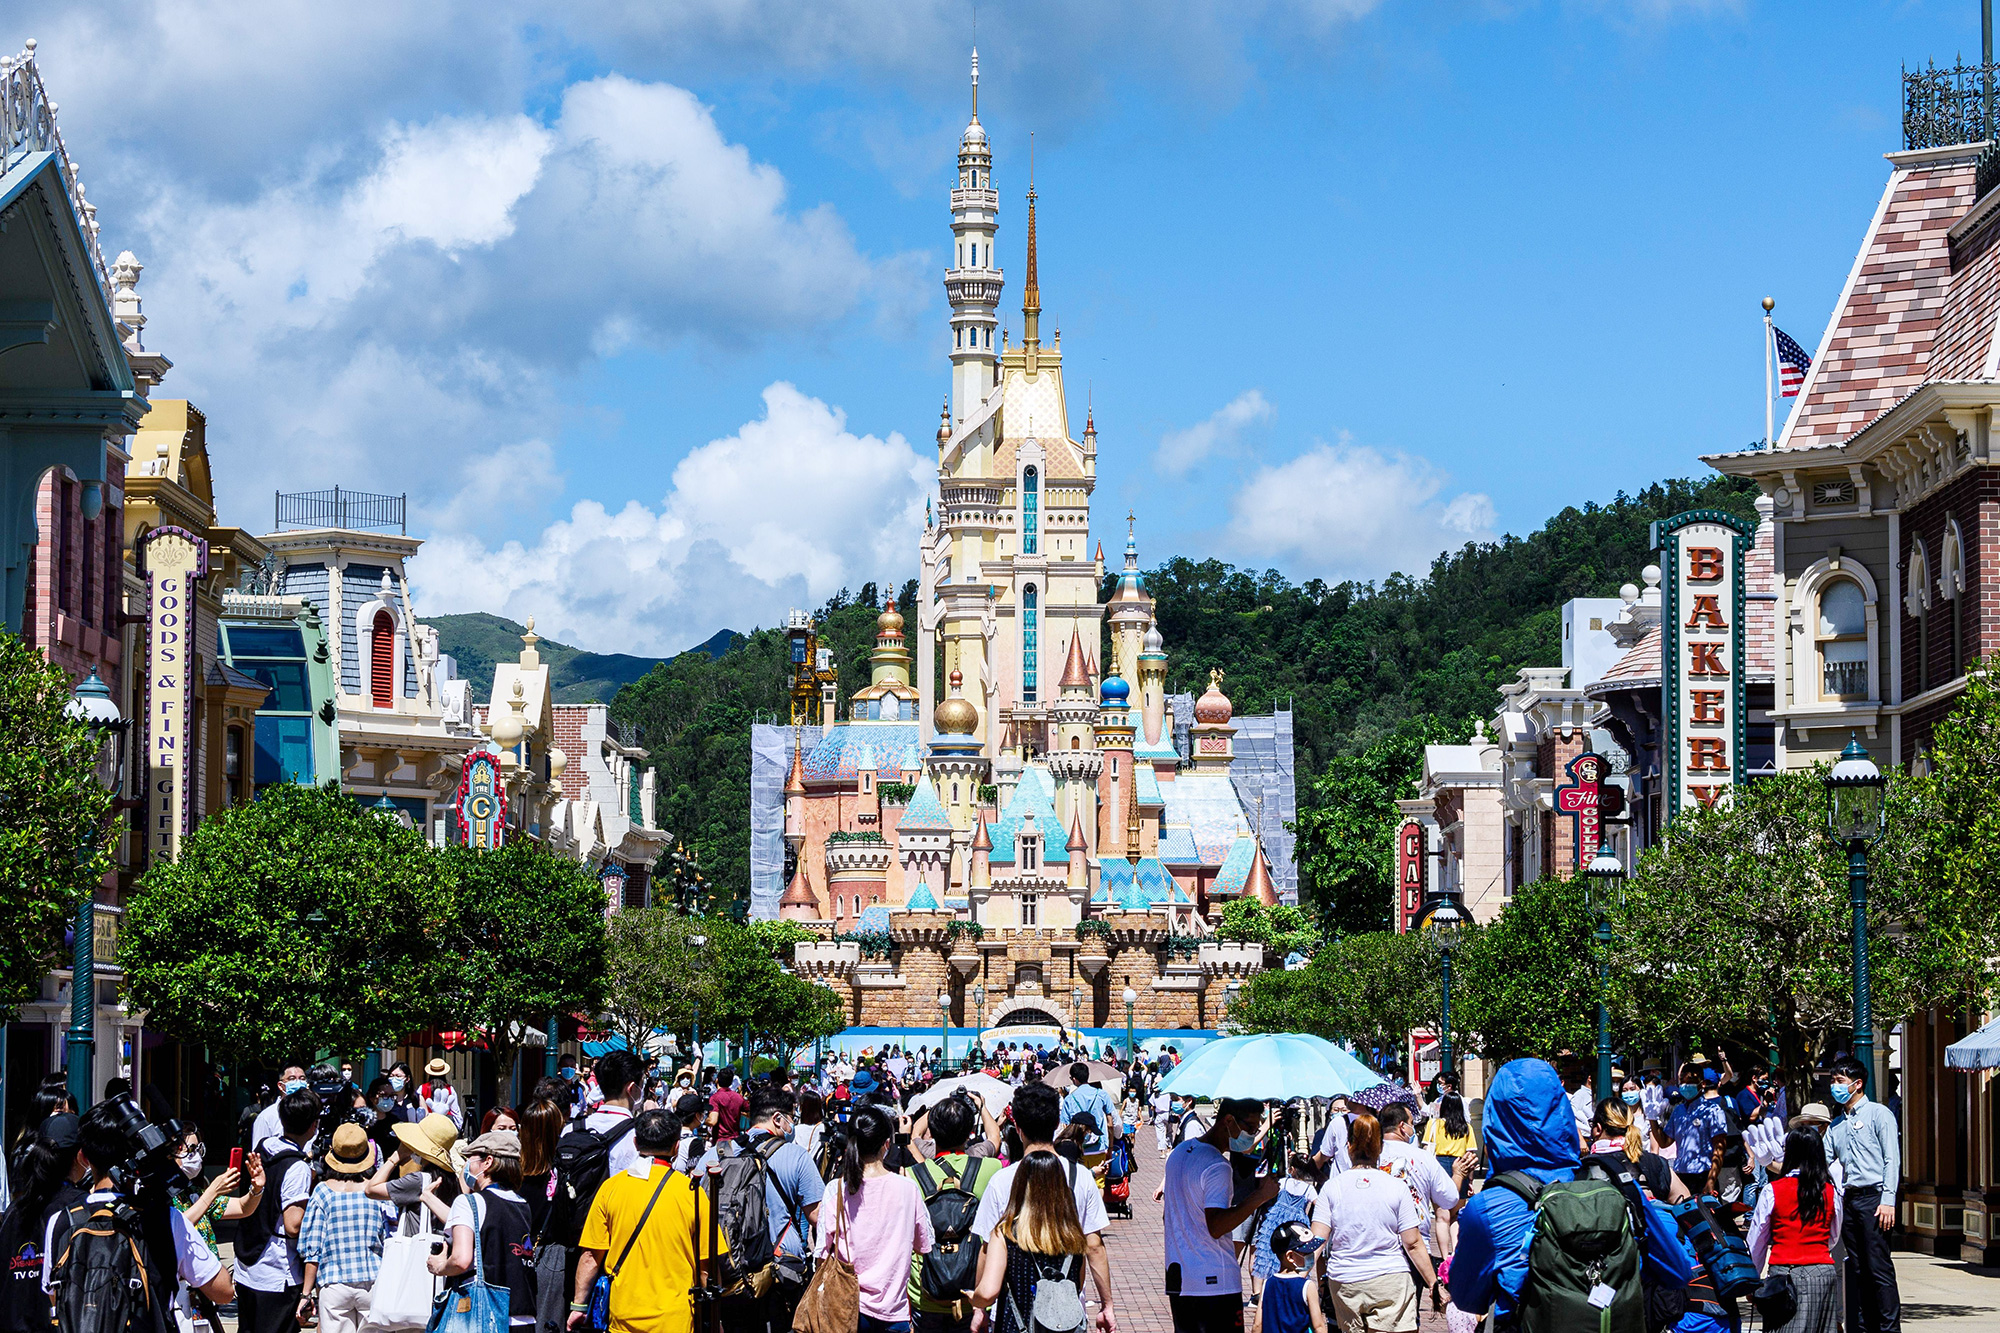 Hong Kong's Disneyland on June 18, 2020, after the theme park officially reopened